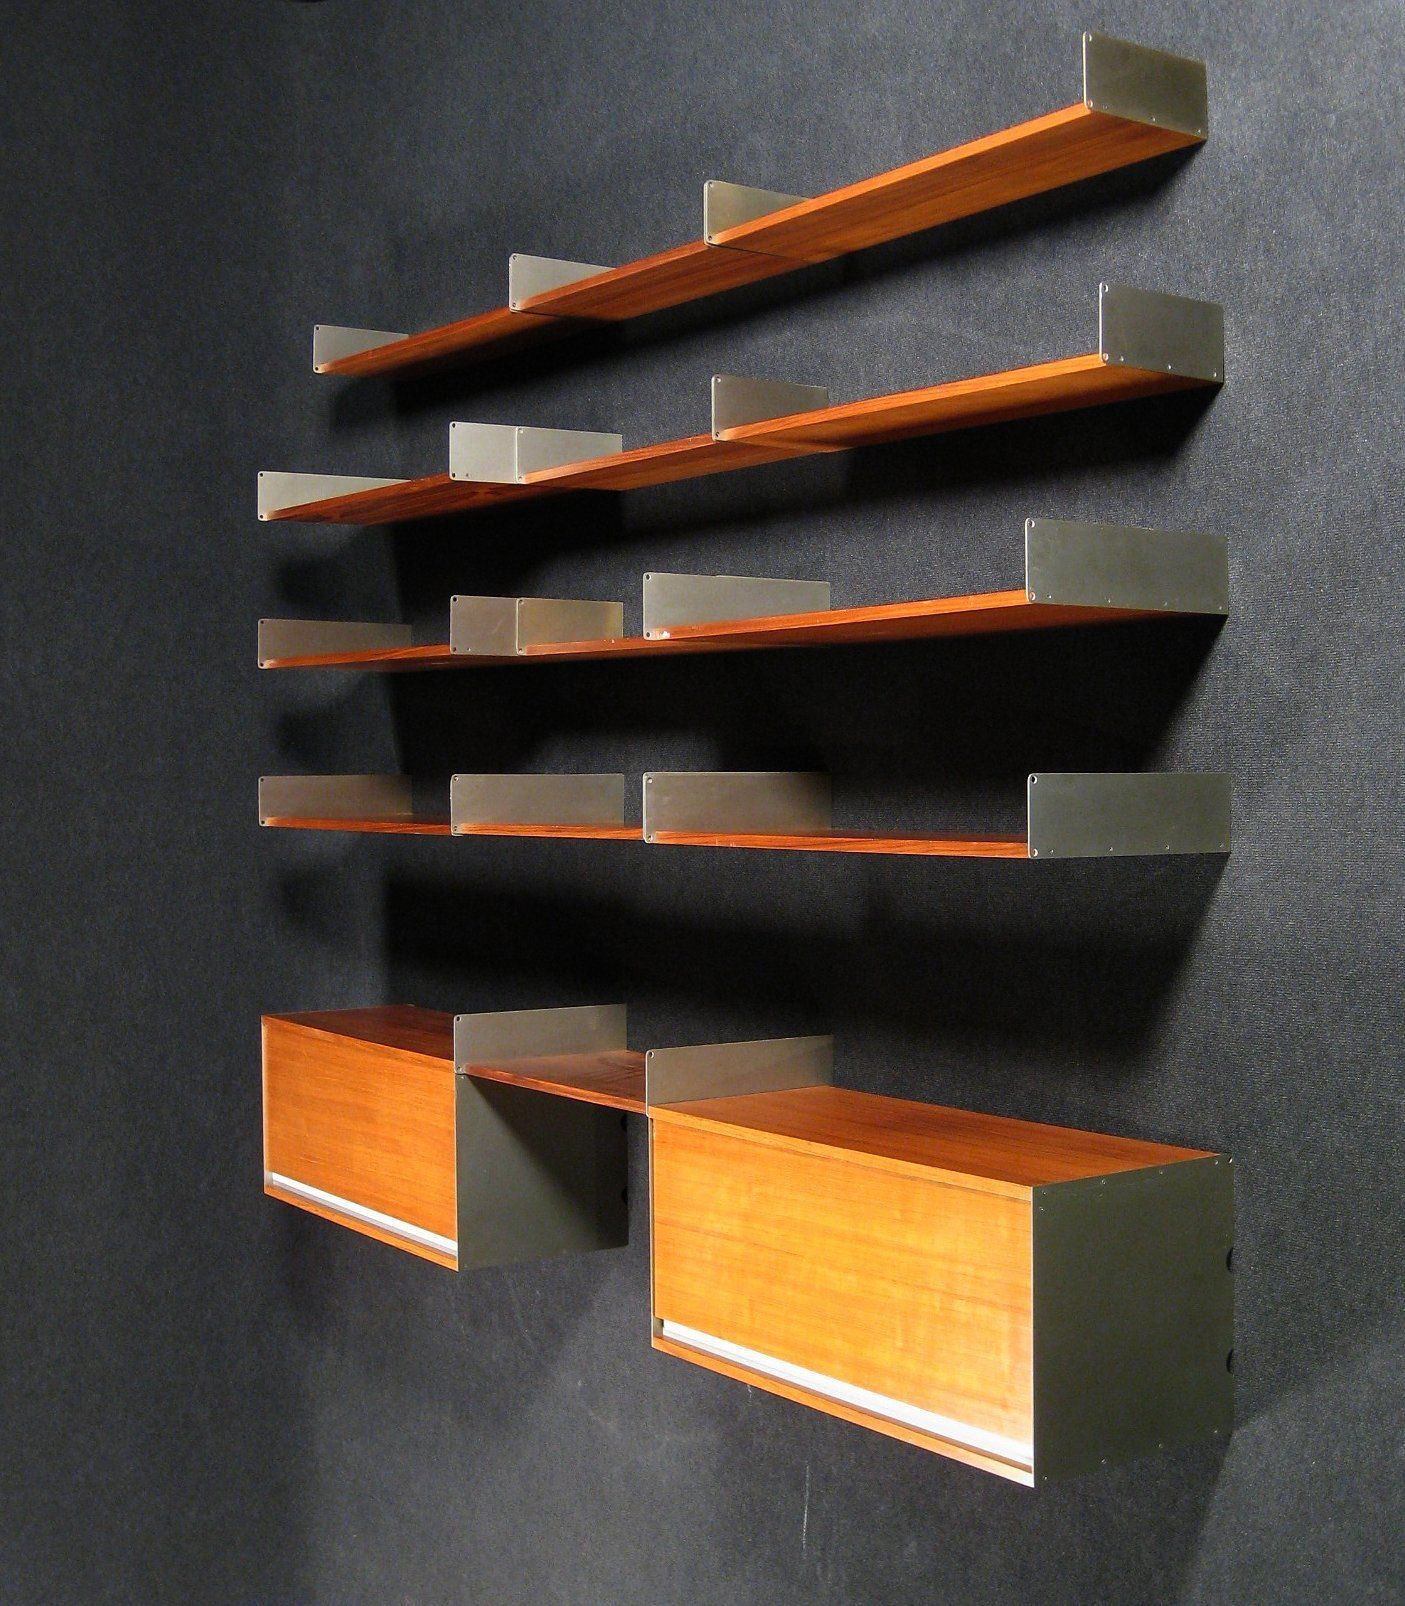 Dieter Rams System 606 Oak And Aluminum Shelving Unit For